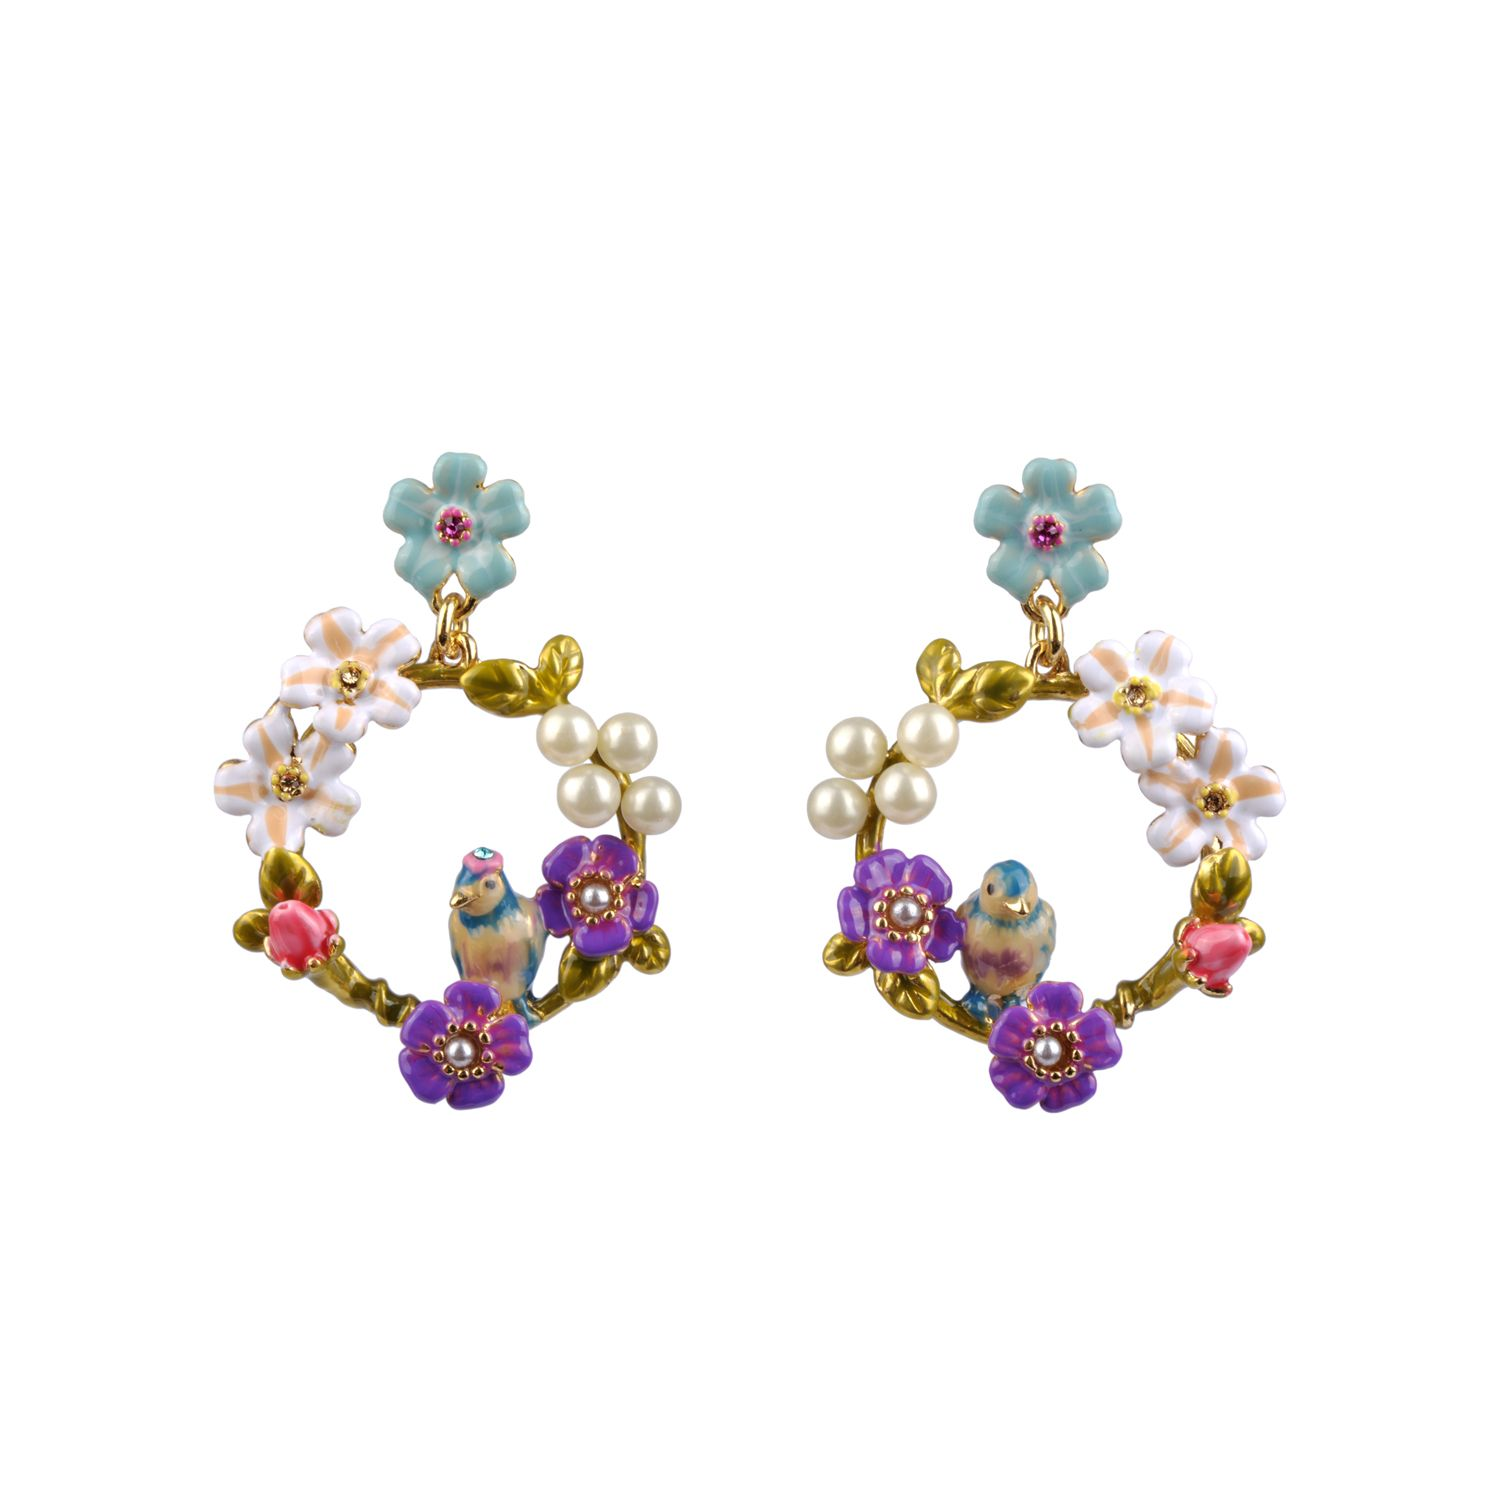 Jardin d amour earrings